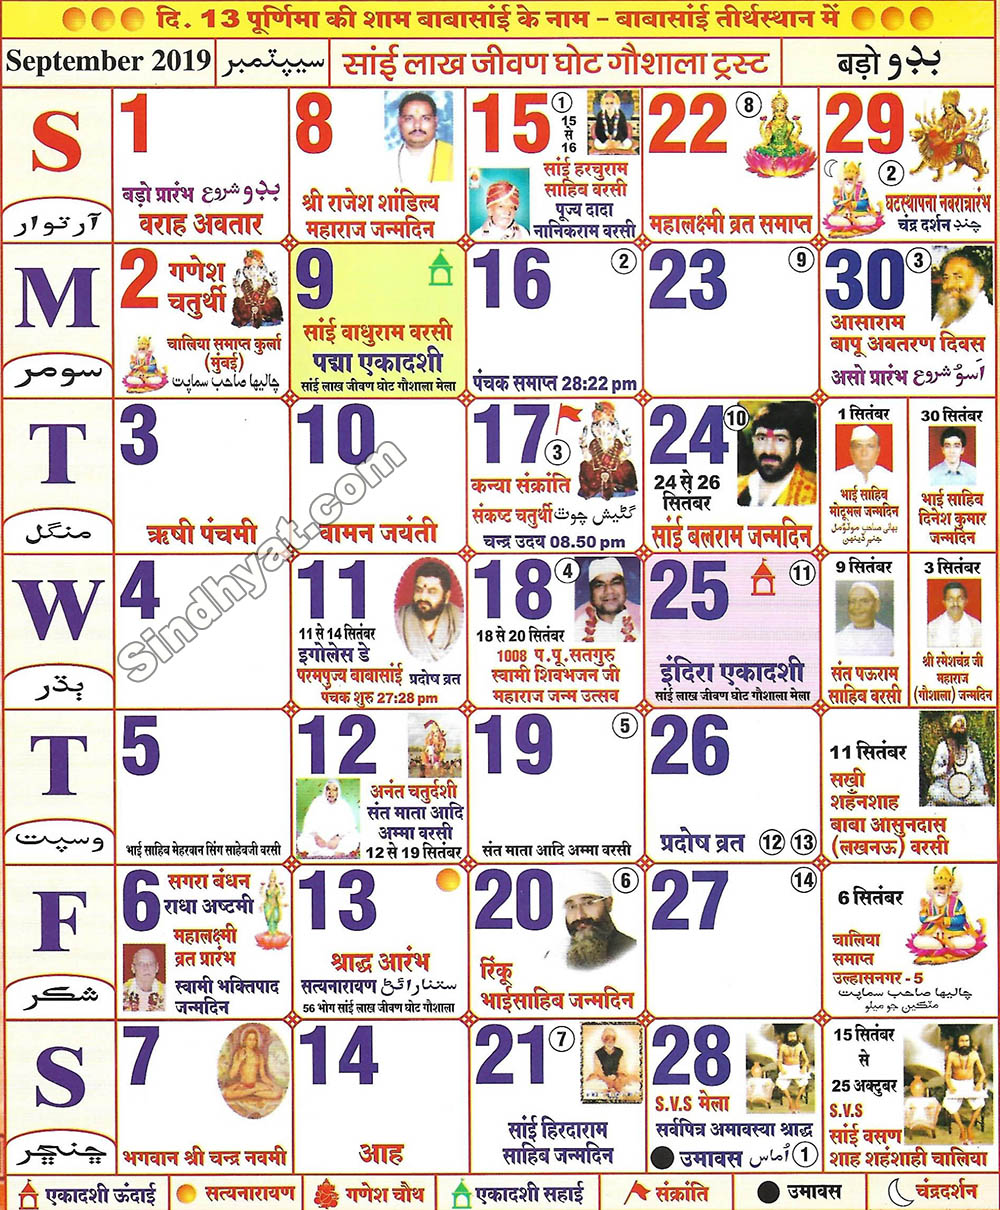 Sindhi Calendar for the month of September, 2019